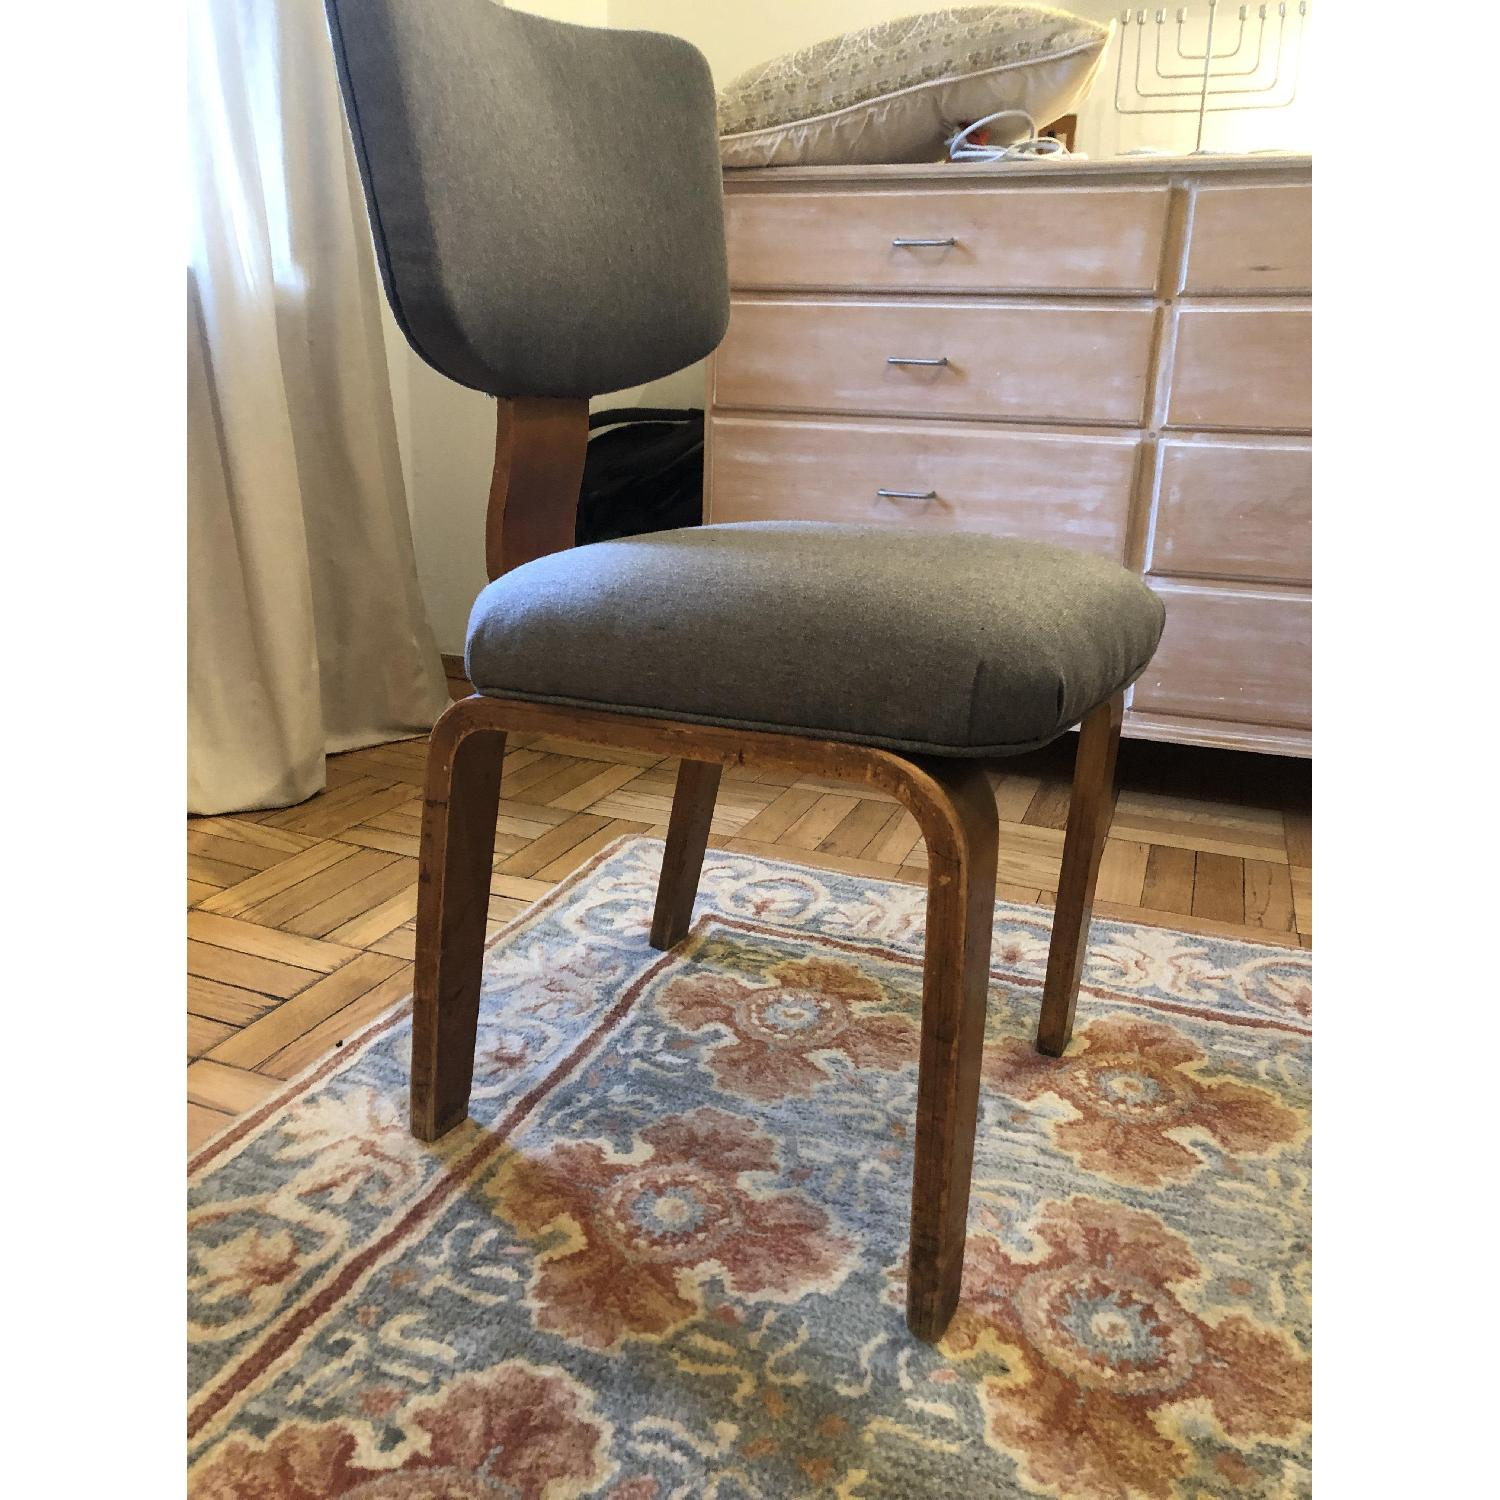 Thonet mid-century modern side chair - image-6